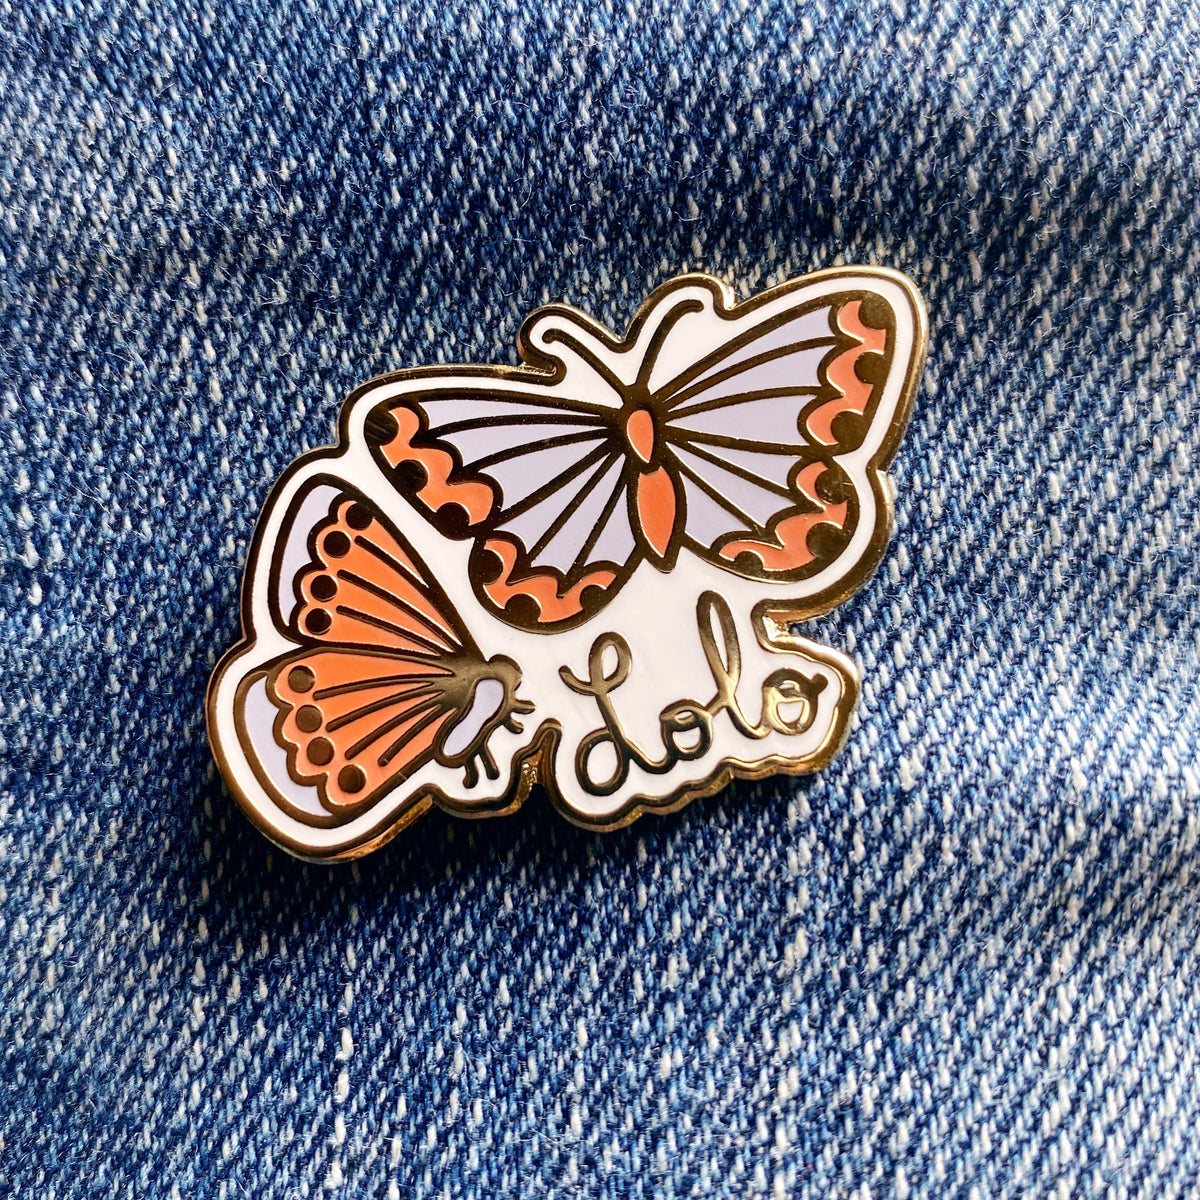 Custom Hard Enamel Pins